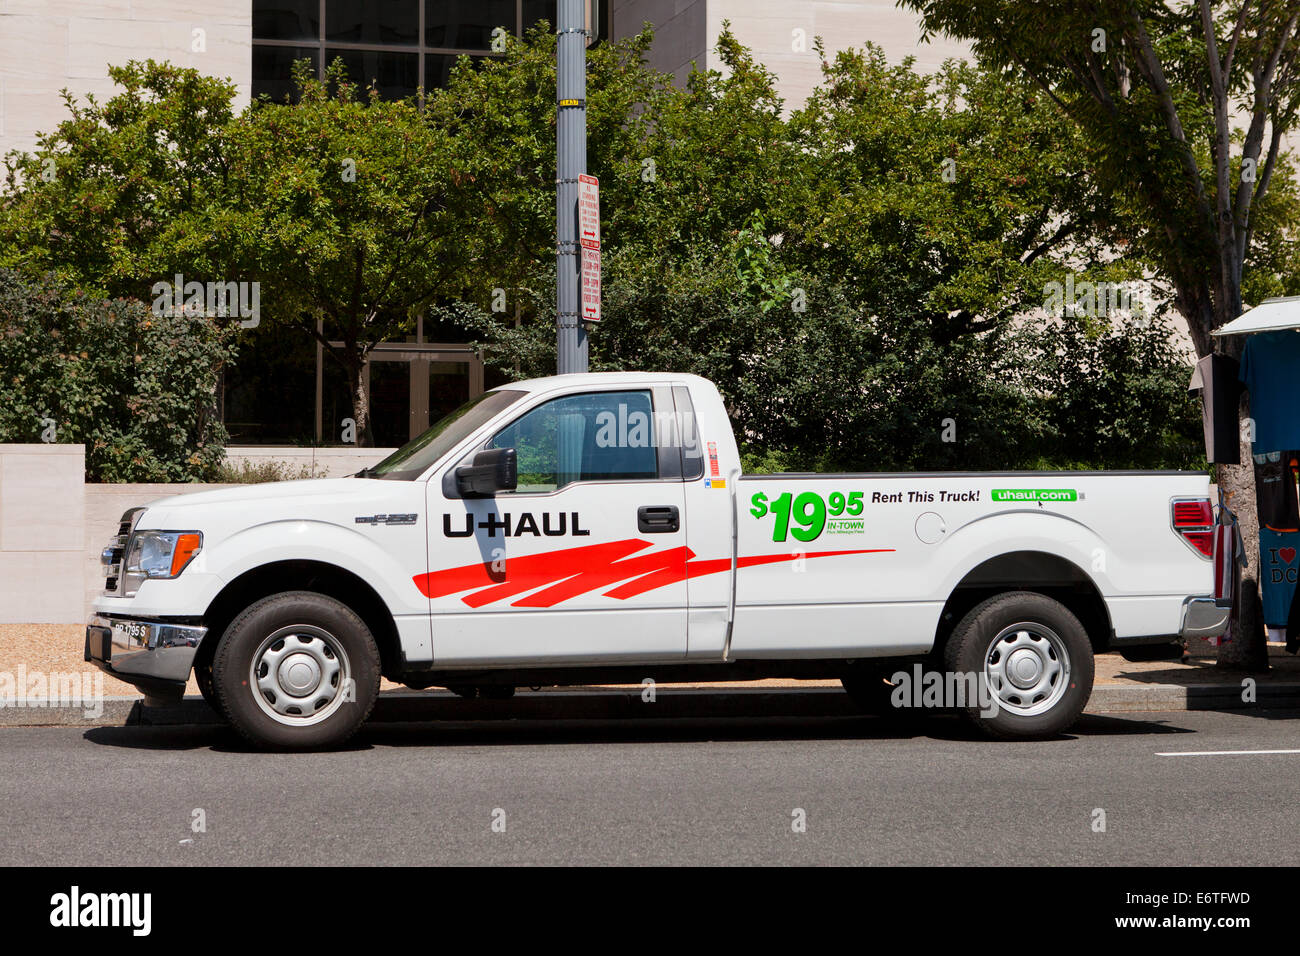 Pickup Truck Rentals >> U Haul Rental Pickup Truck Usa Stock Photo 73068729 Alamy